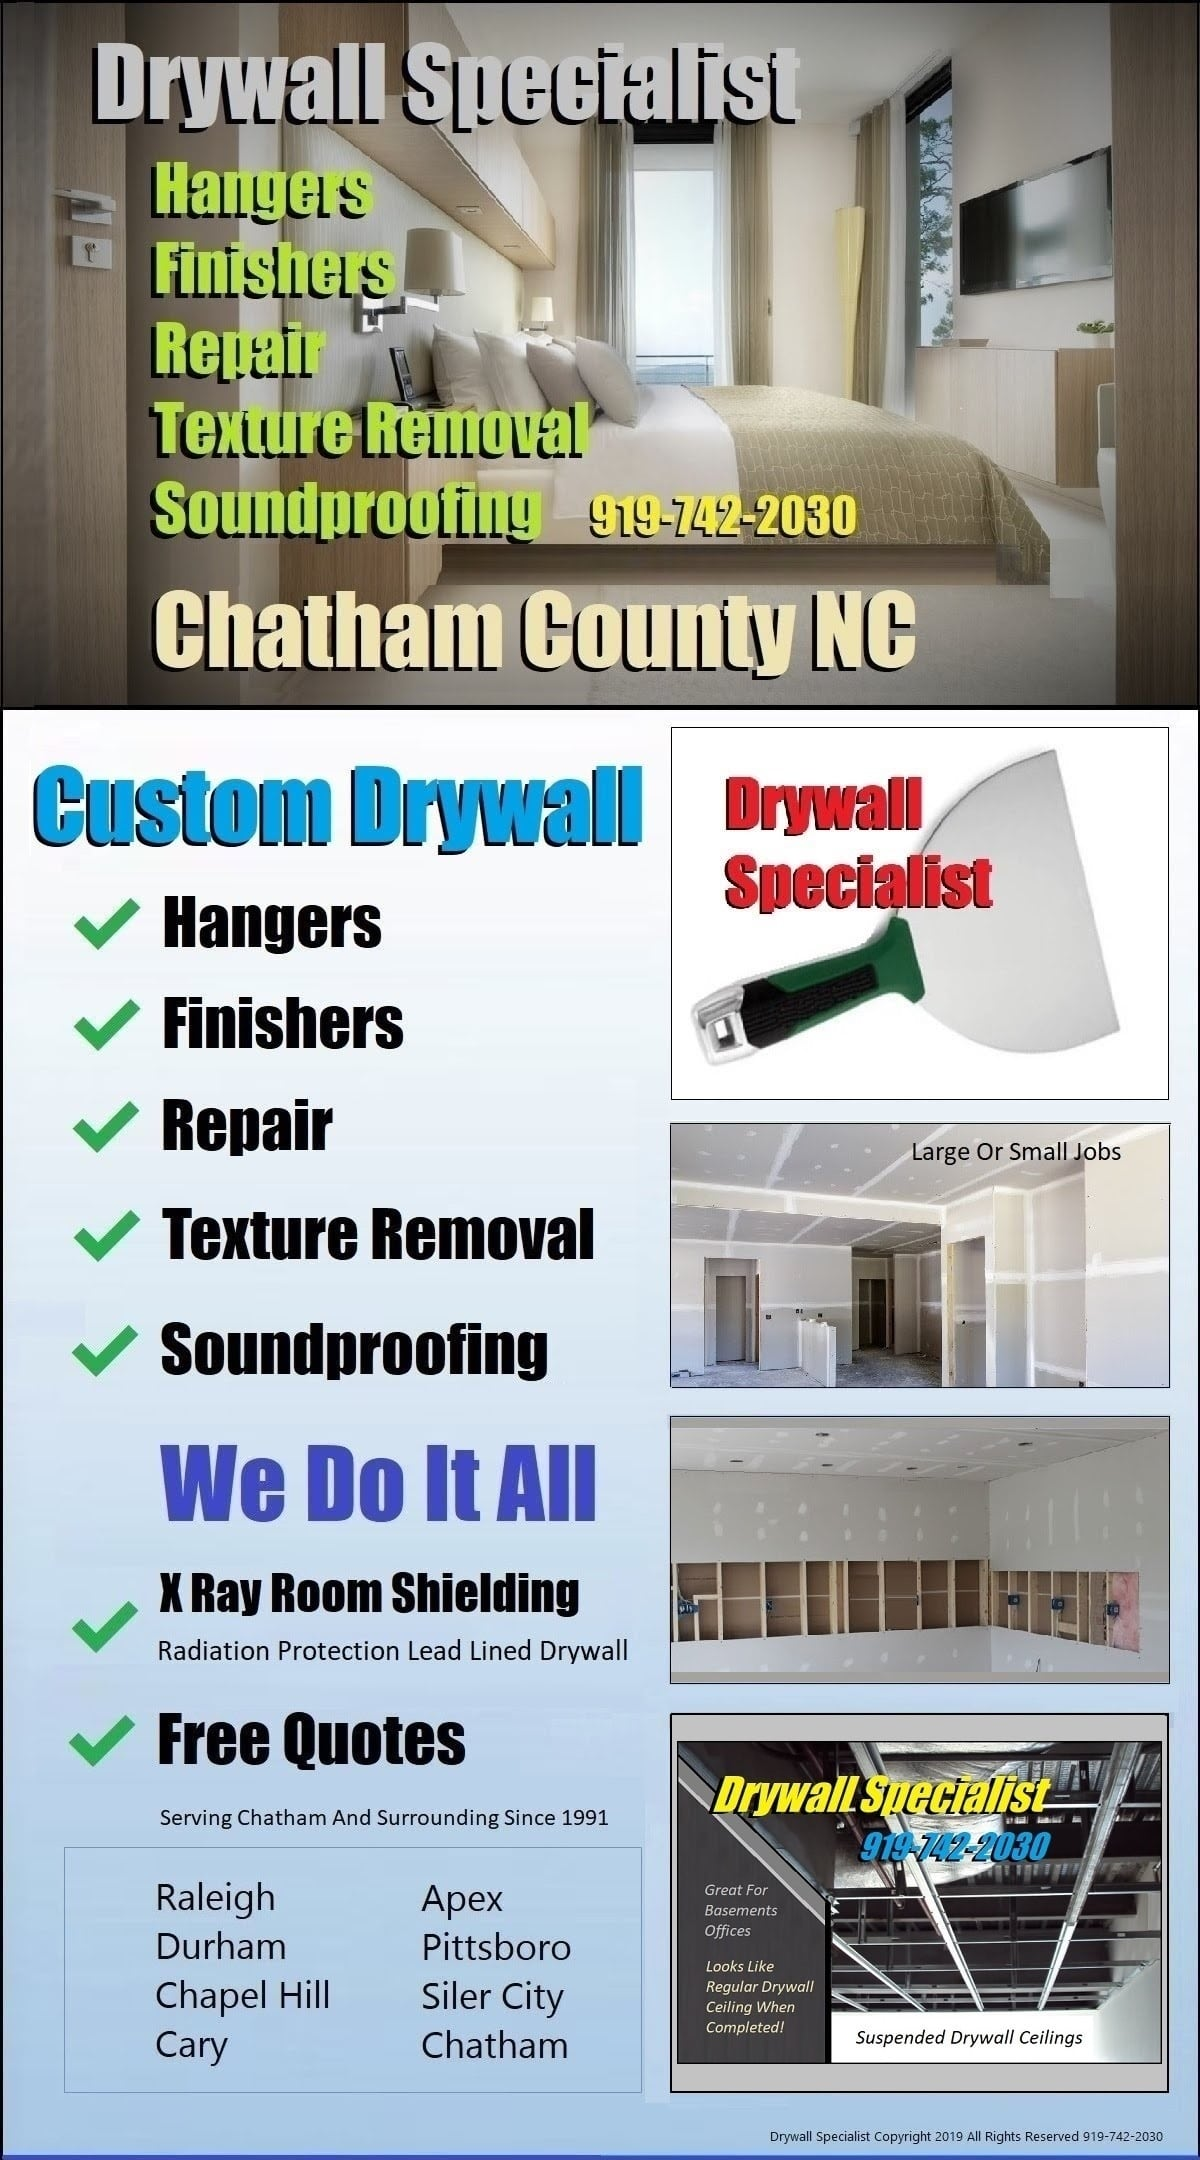 Nextdoor #LibertyWallboardRepairHangerFinisher Repair And Popcorn Texture Removal Contractor | North Carolina